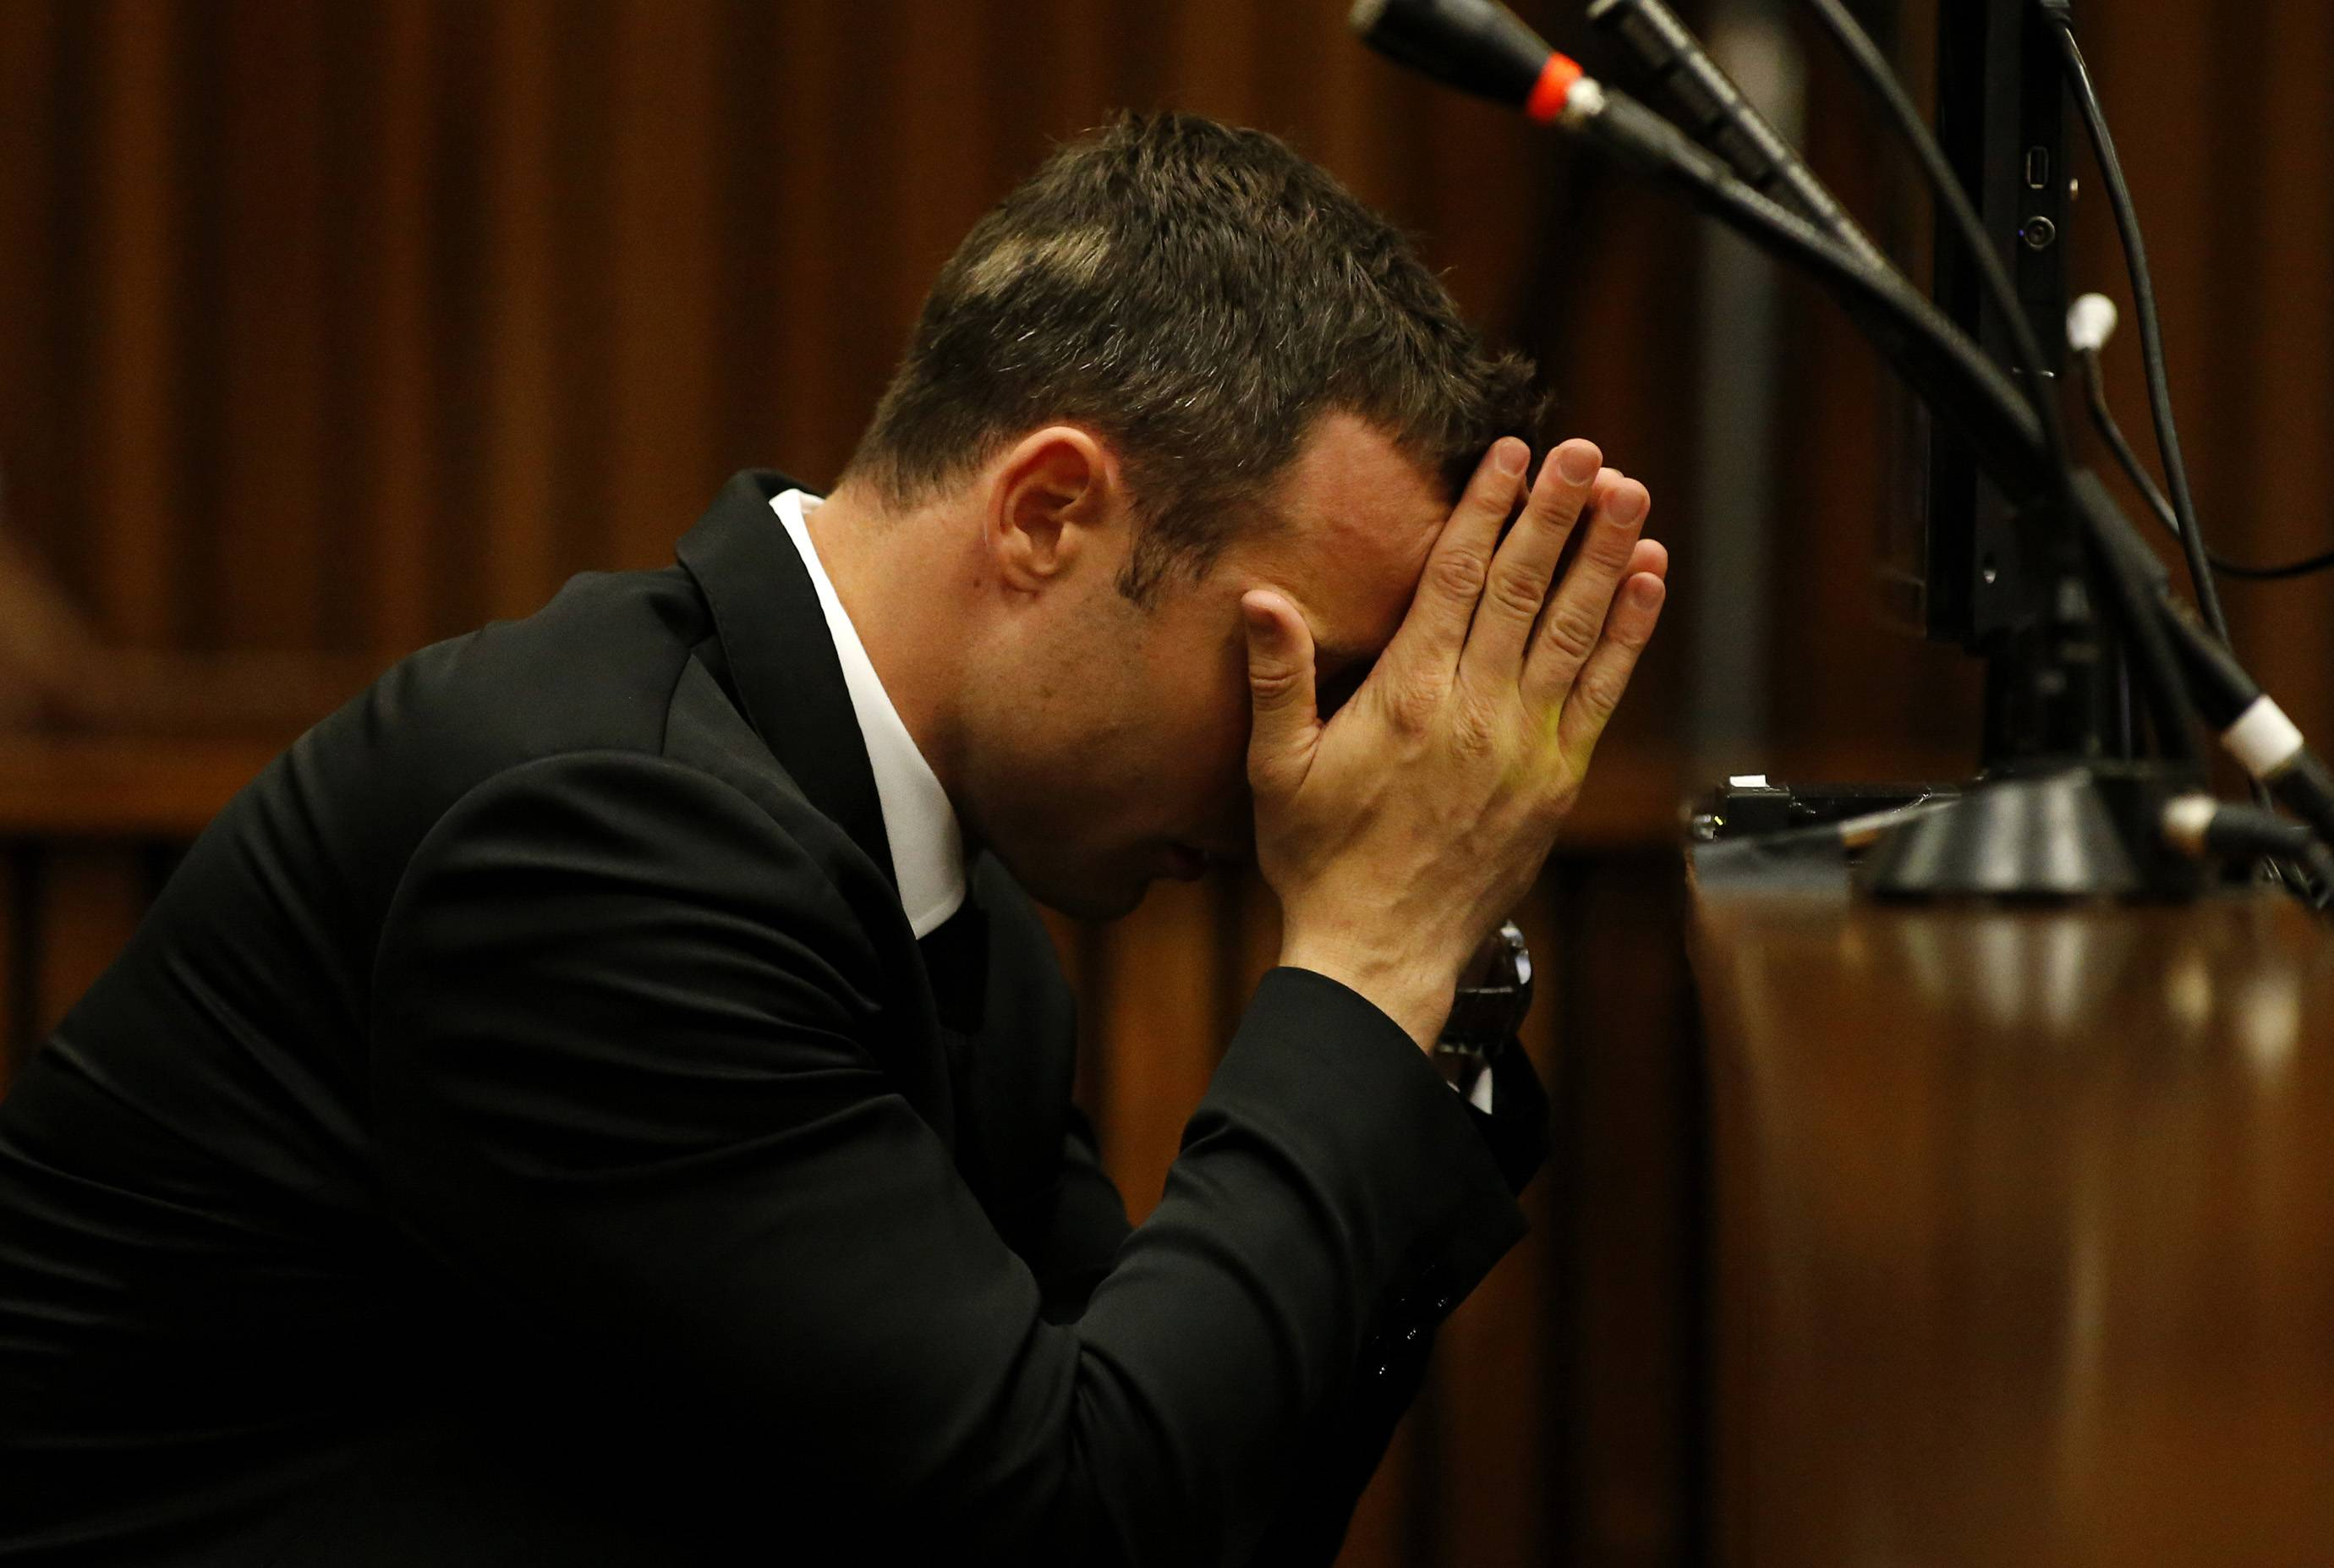 Oscar Pistorius sits in the dock in court on the third day of his trial at the high court in Pretoria, South Africa, Wednesday. Pistorius is charged with murder for the shooting death of his girlfriend, Reeva Steenkamp, on Valentine's Day in 2013.